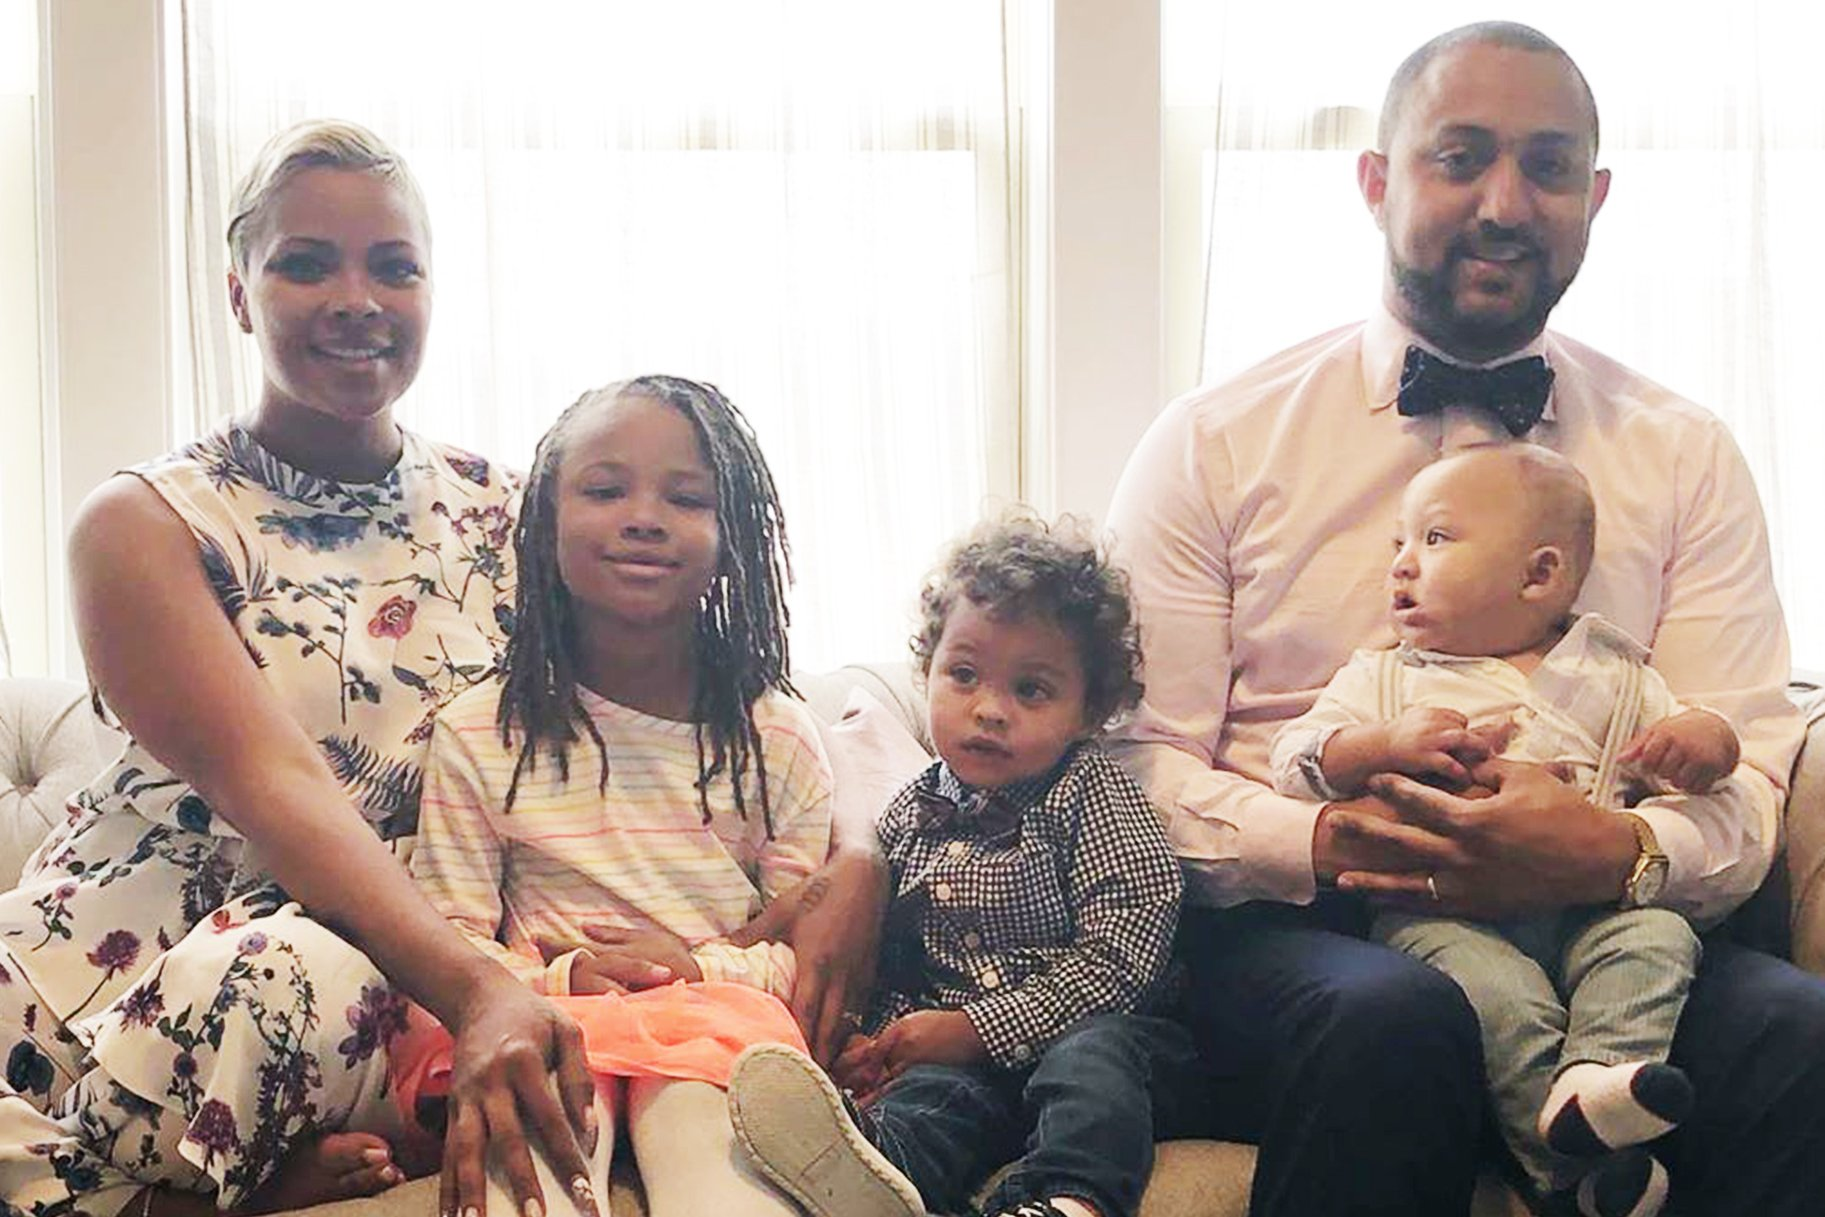 Eva Marcille Shares Gorgeous Family Photos Ahead Of The Winter Holidays – People Are Amazed By Marley's Beauty